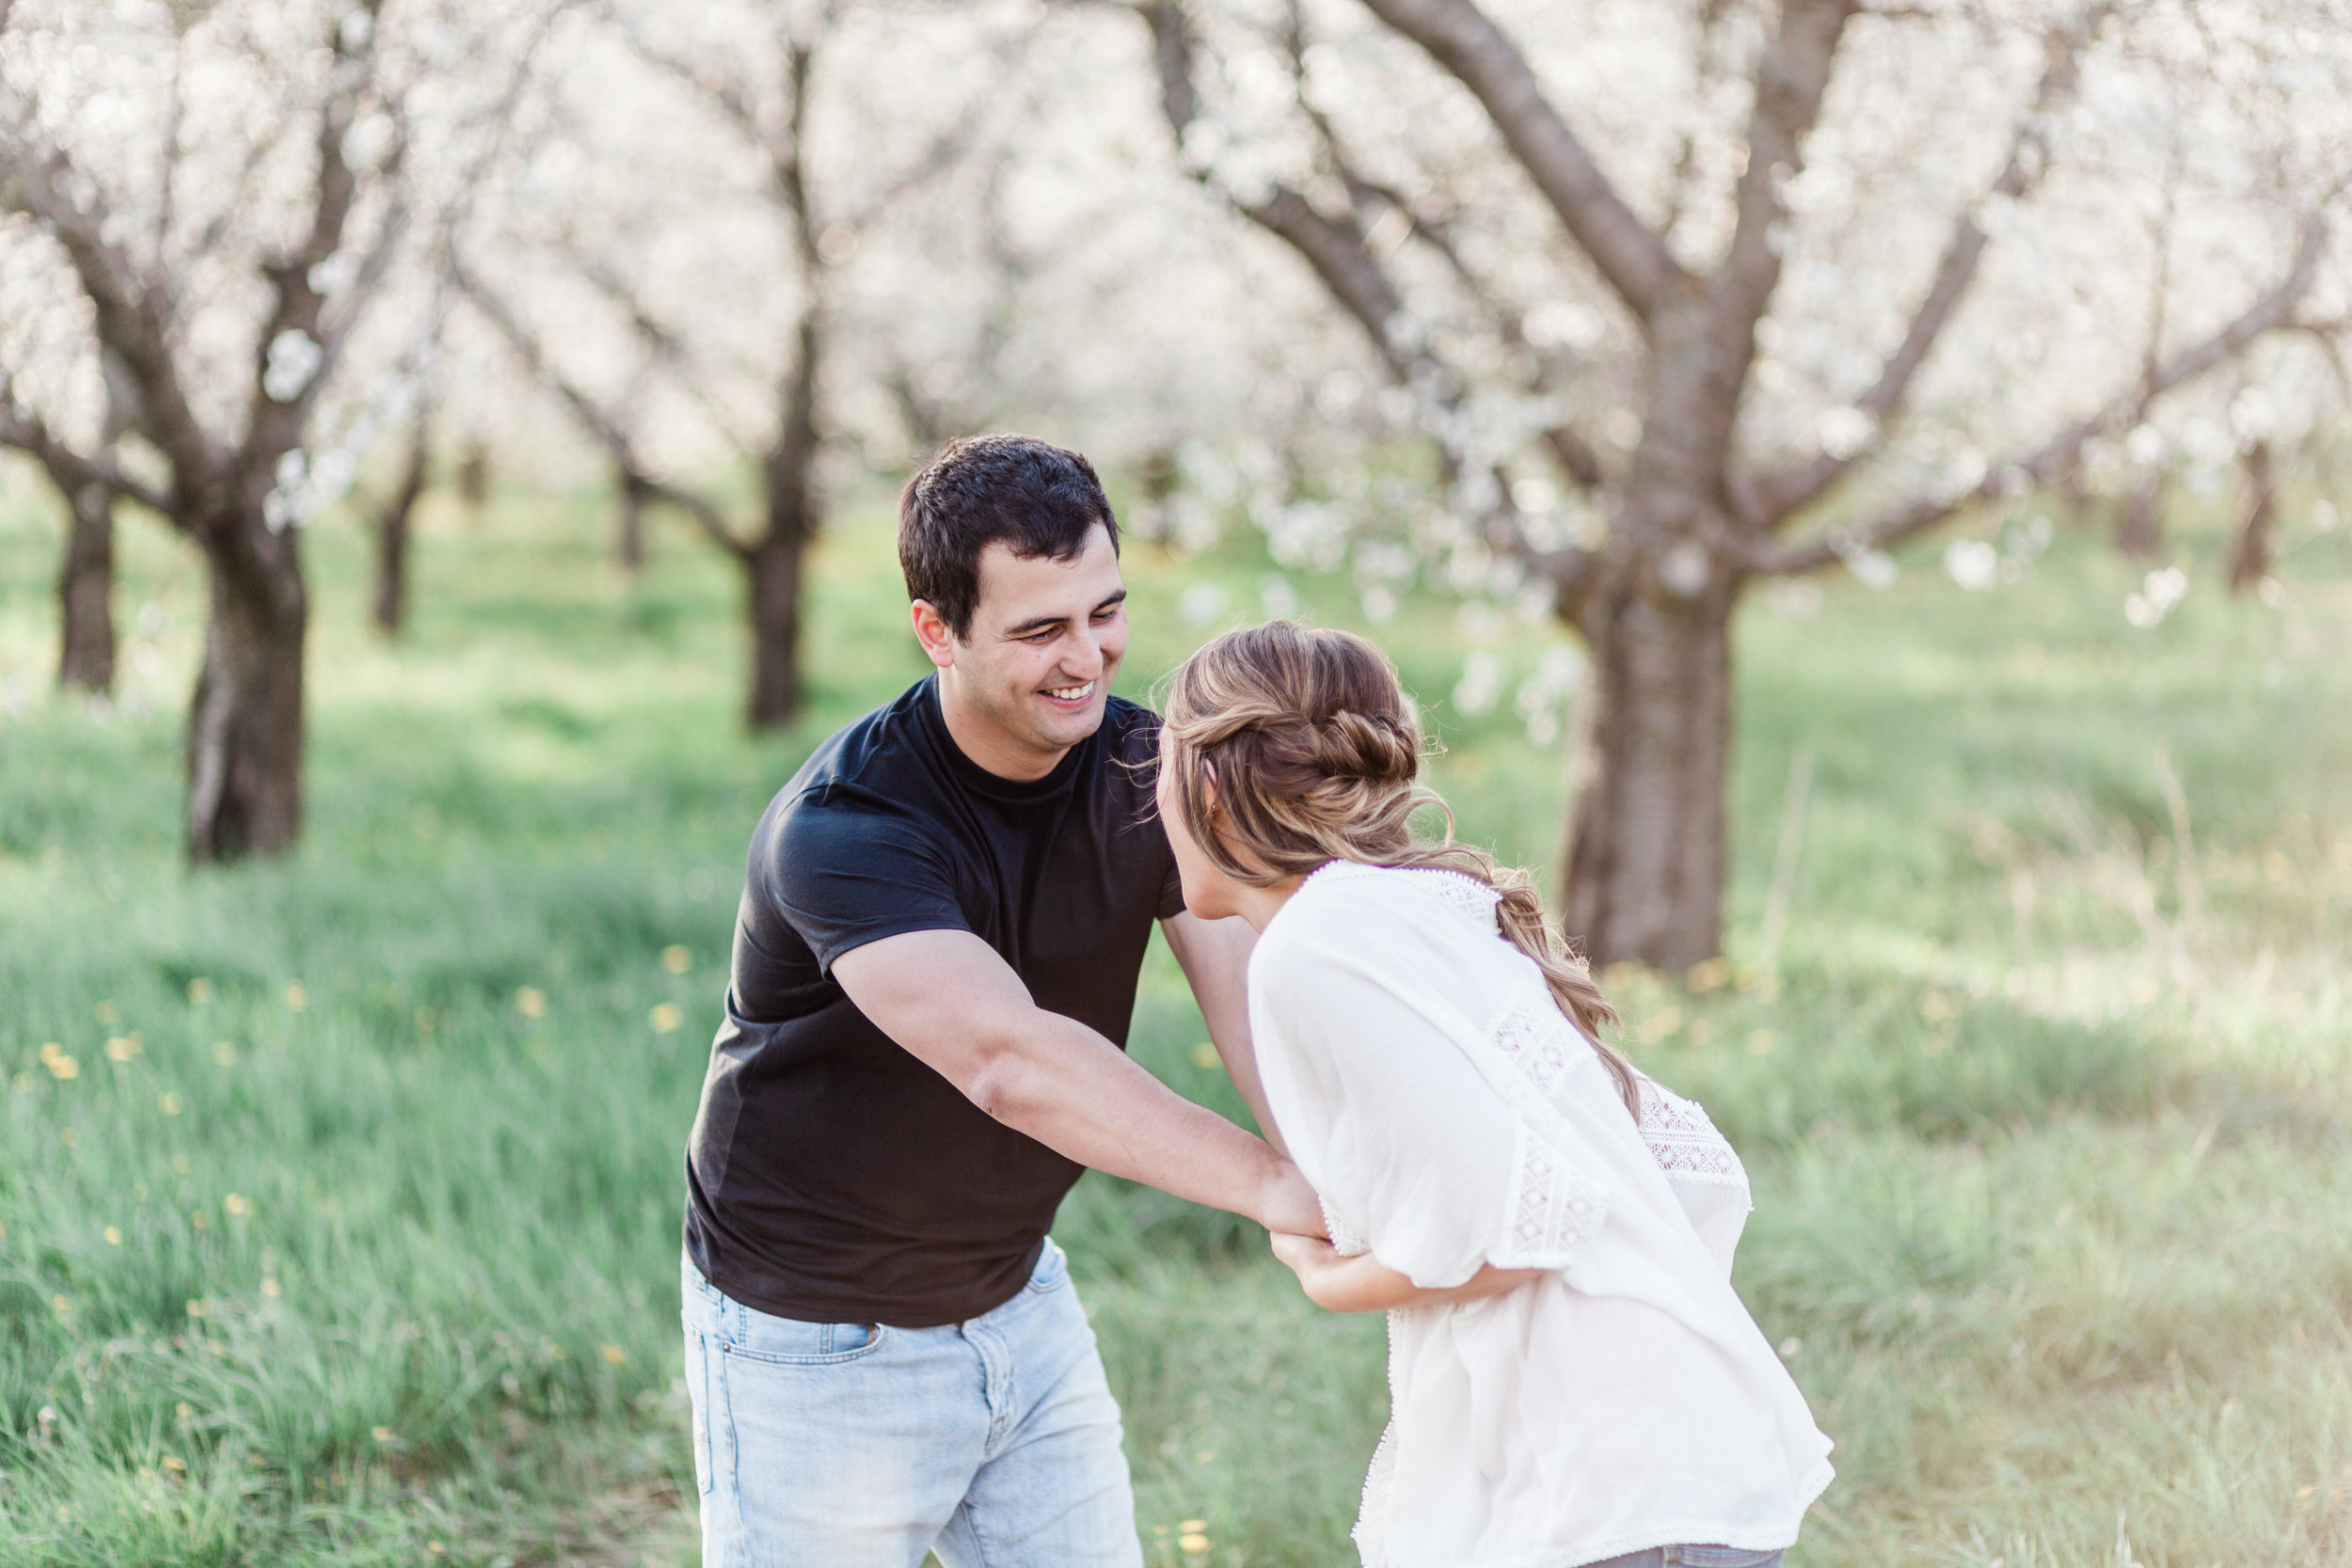 Gorgeous Garden Engagement Photos - The Overwhelmed Bride Wedding Blog